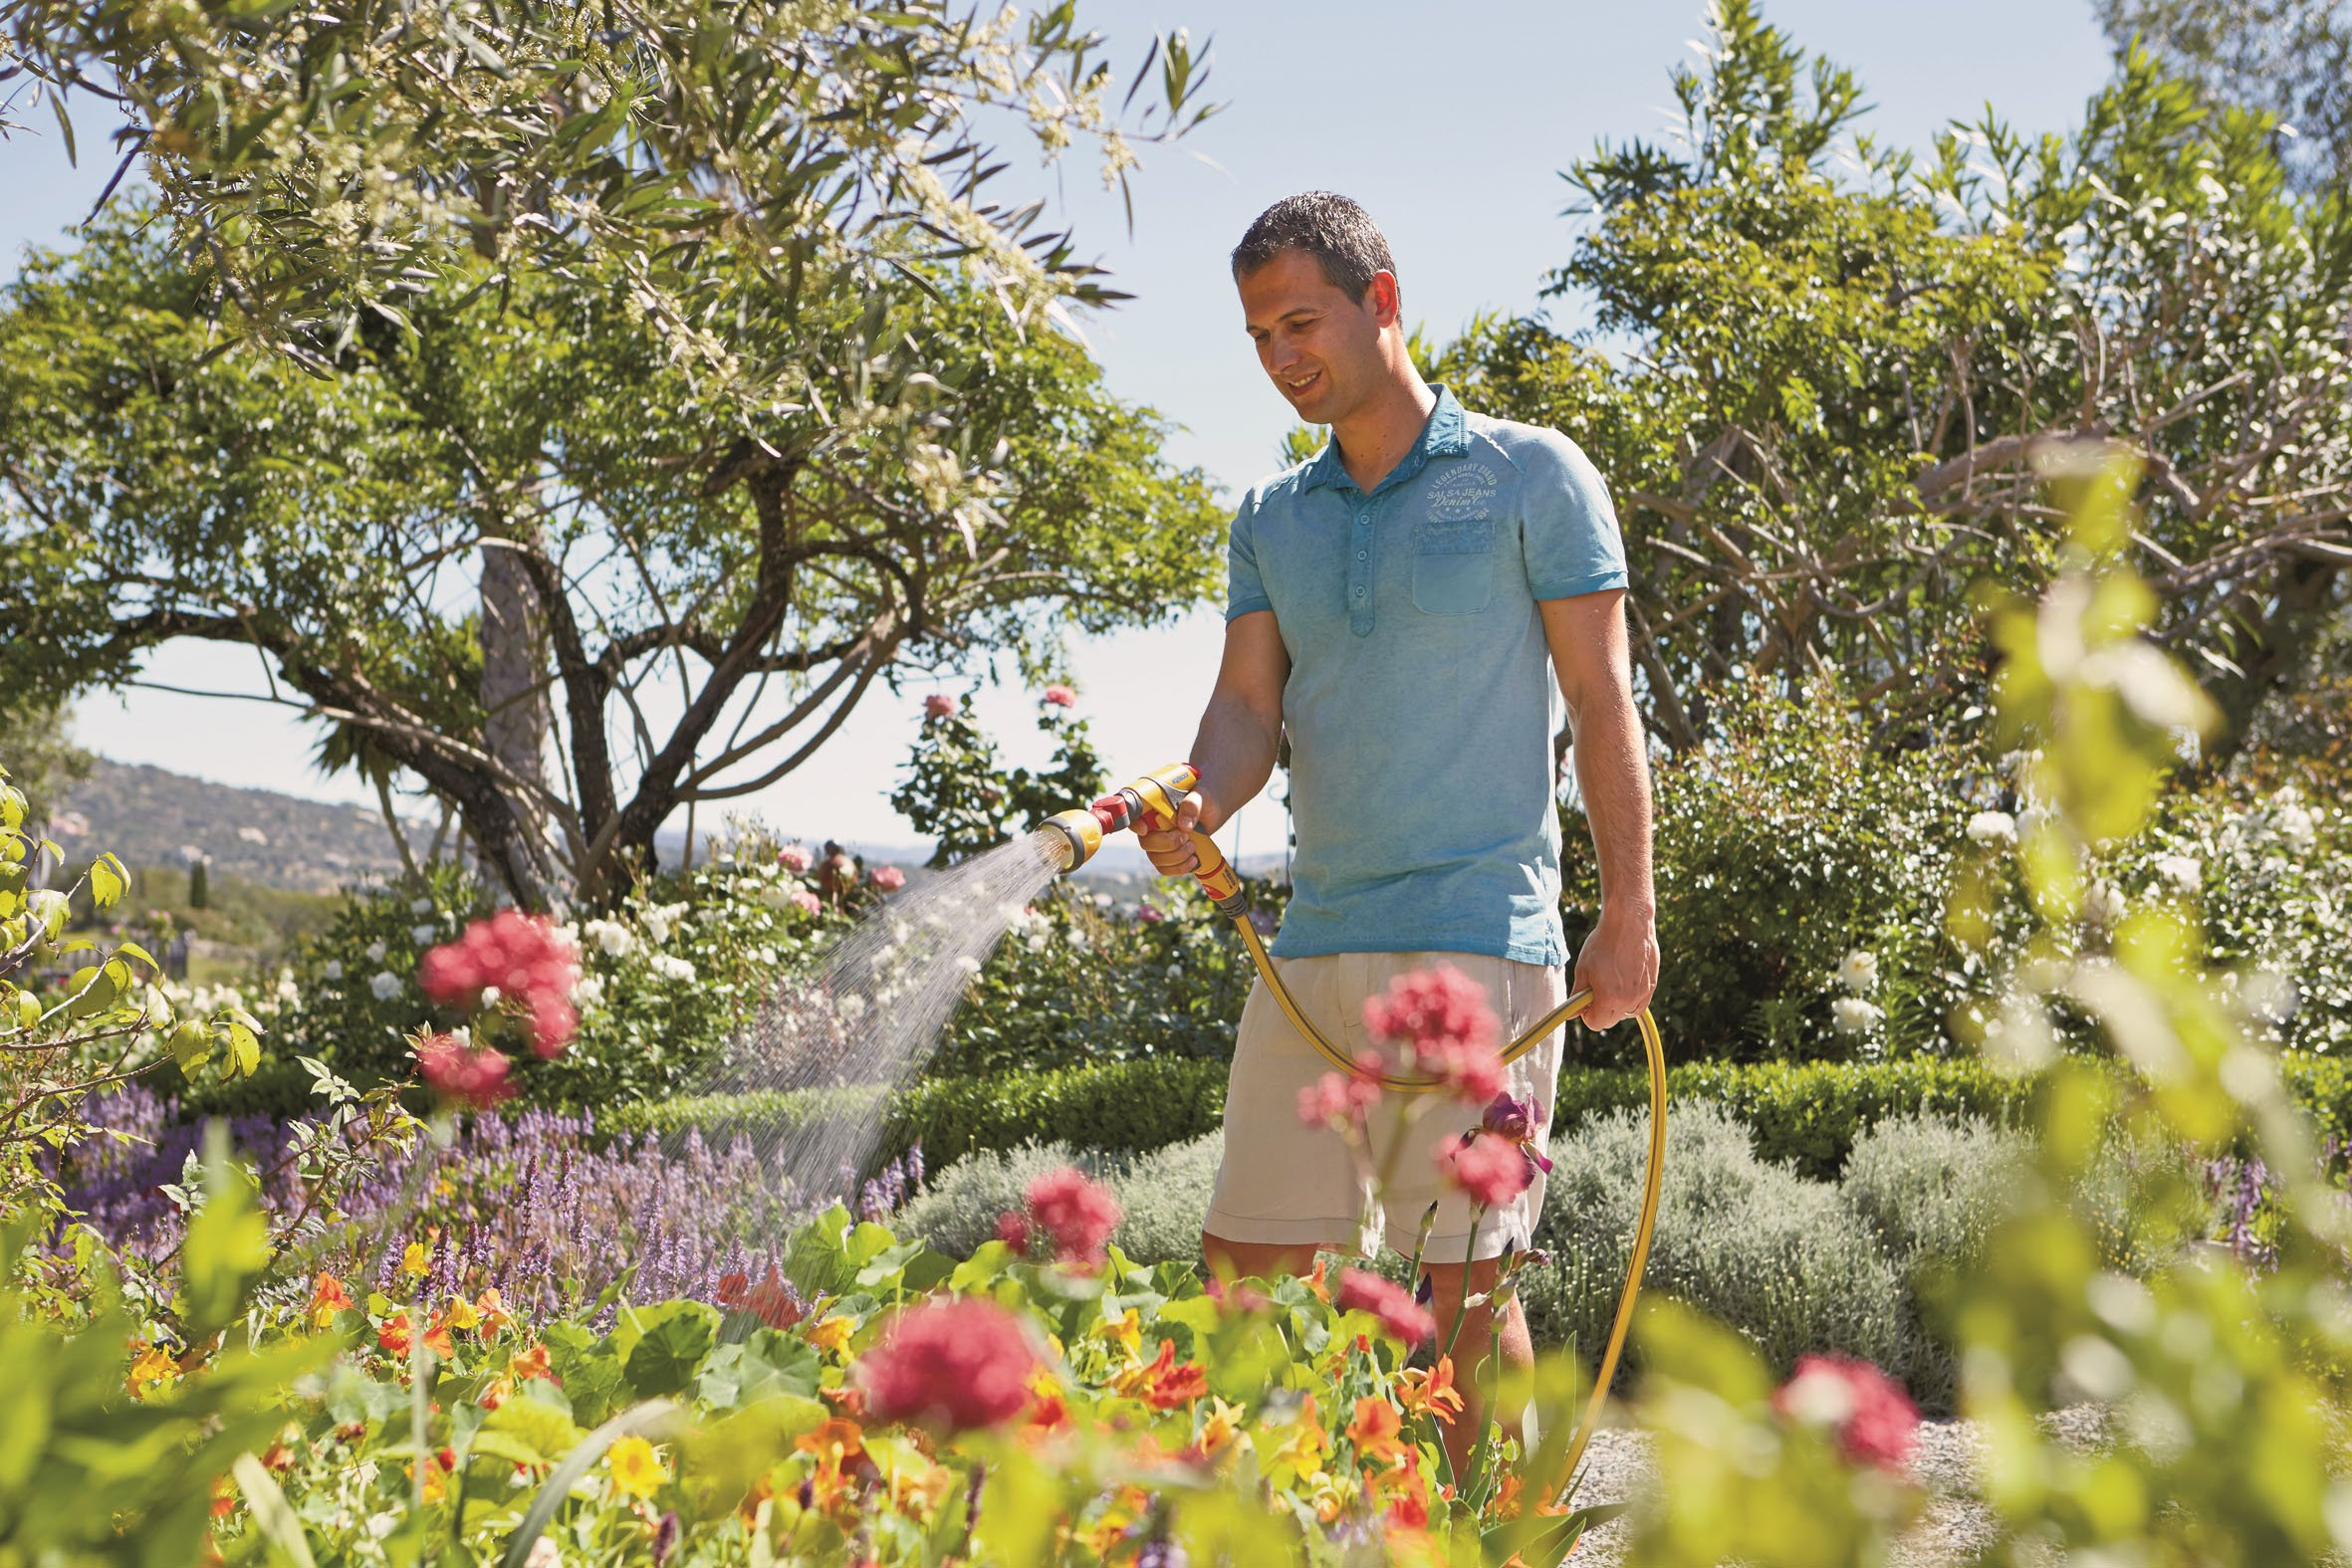 Garden Care and Maintenance Tips